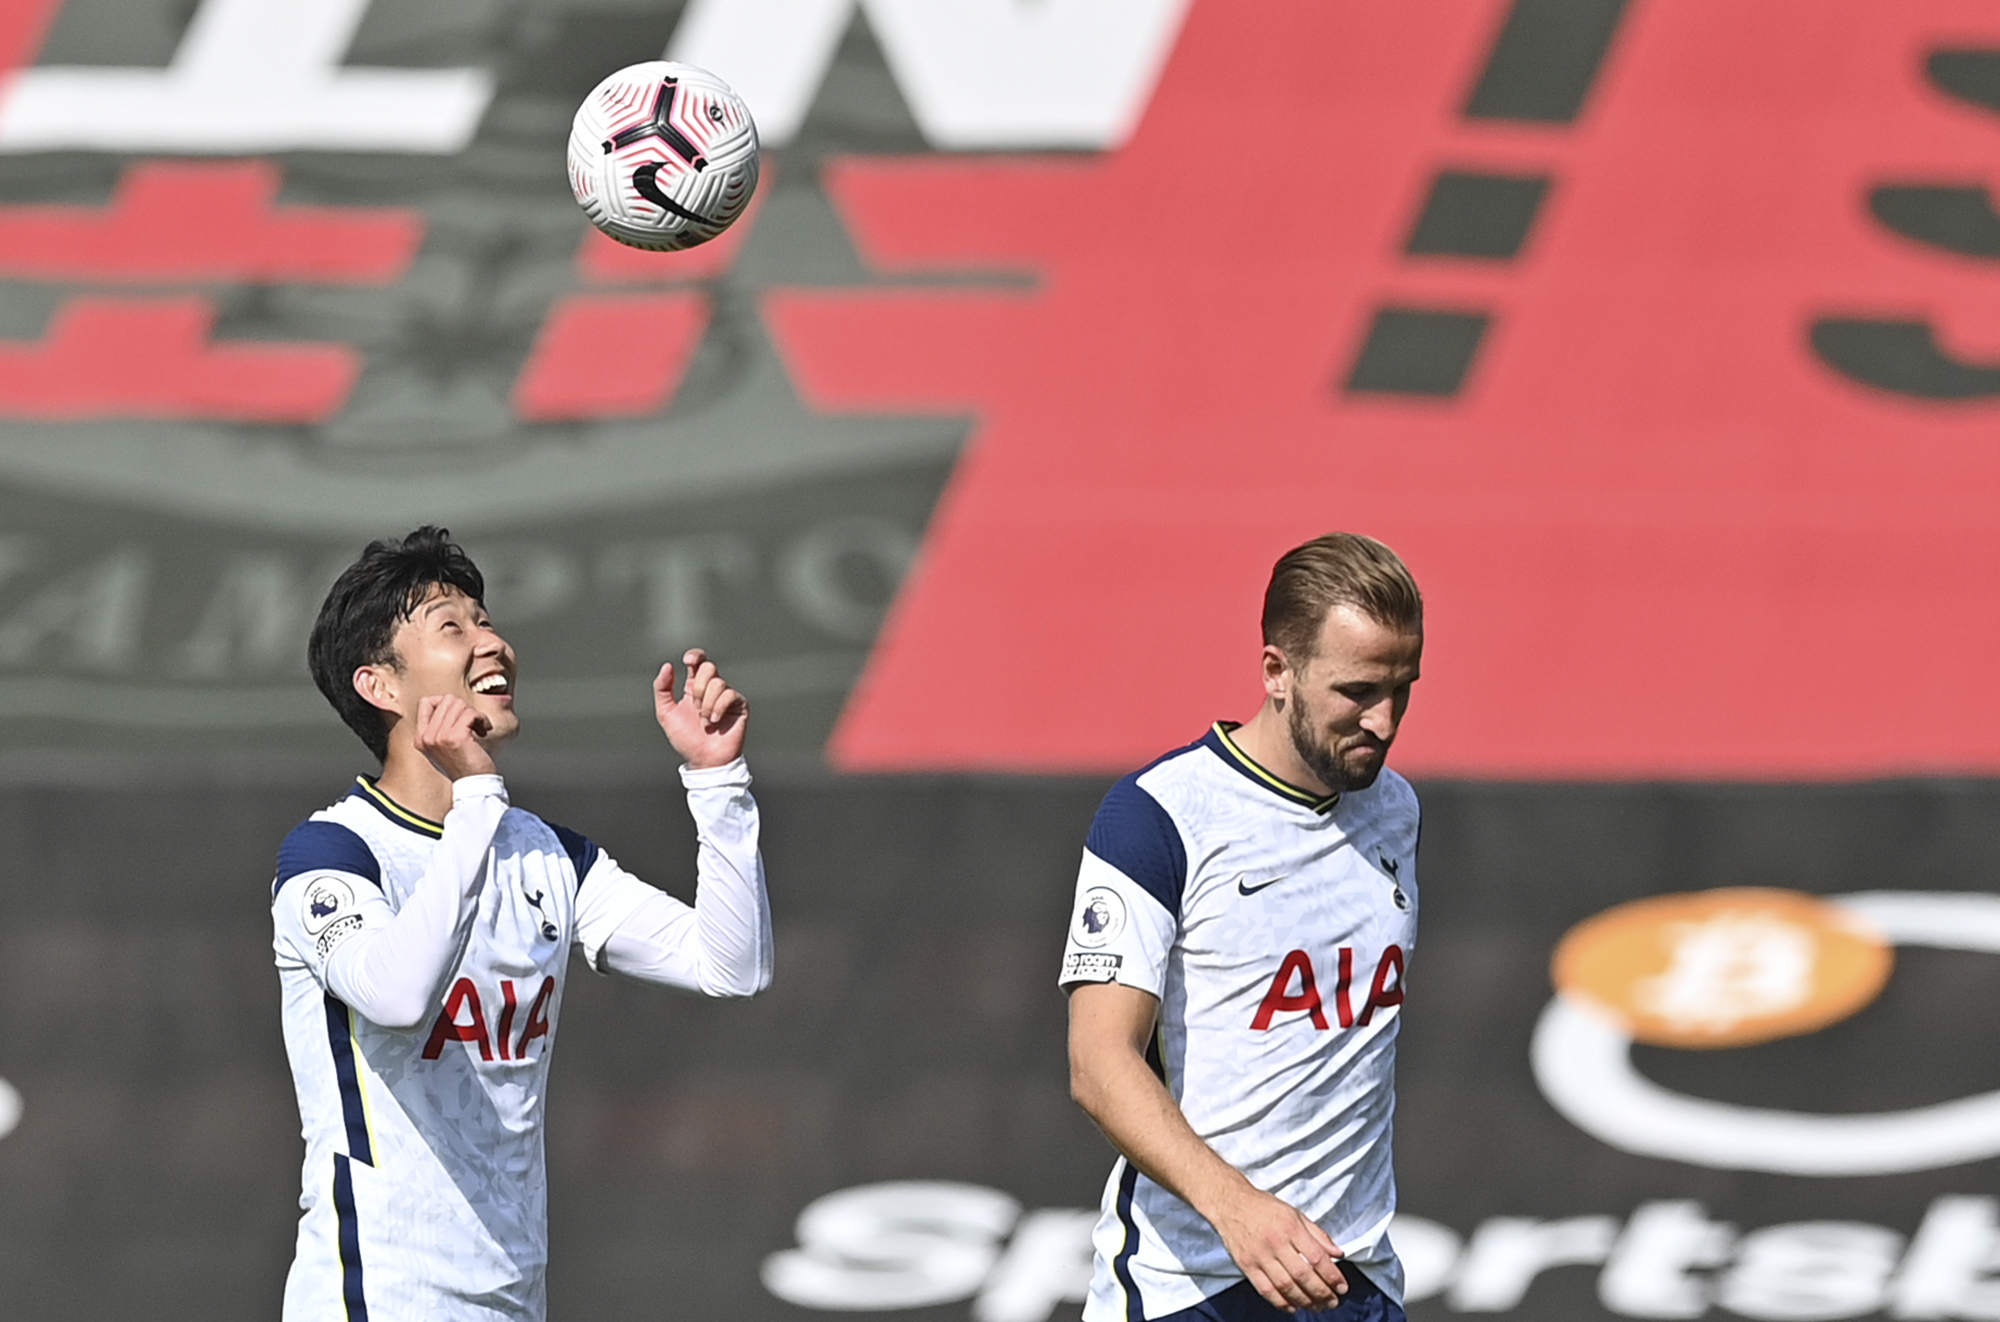 Tottenham's Son Heung-min, left, and Tottenham's Harry Kane celebrate at the end of the English Premier League soccer match between Southampton and Tottenham Hotspur at St. Mary's Stadium in Southampton, England, Sunday, Sept. 20, 2020. (Justin Tallis/Pool via AP)